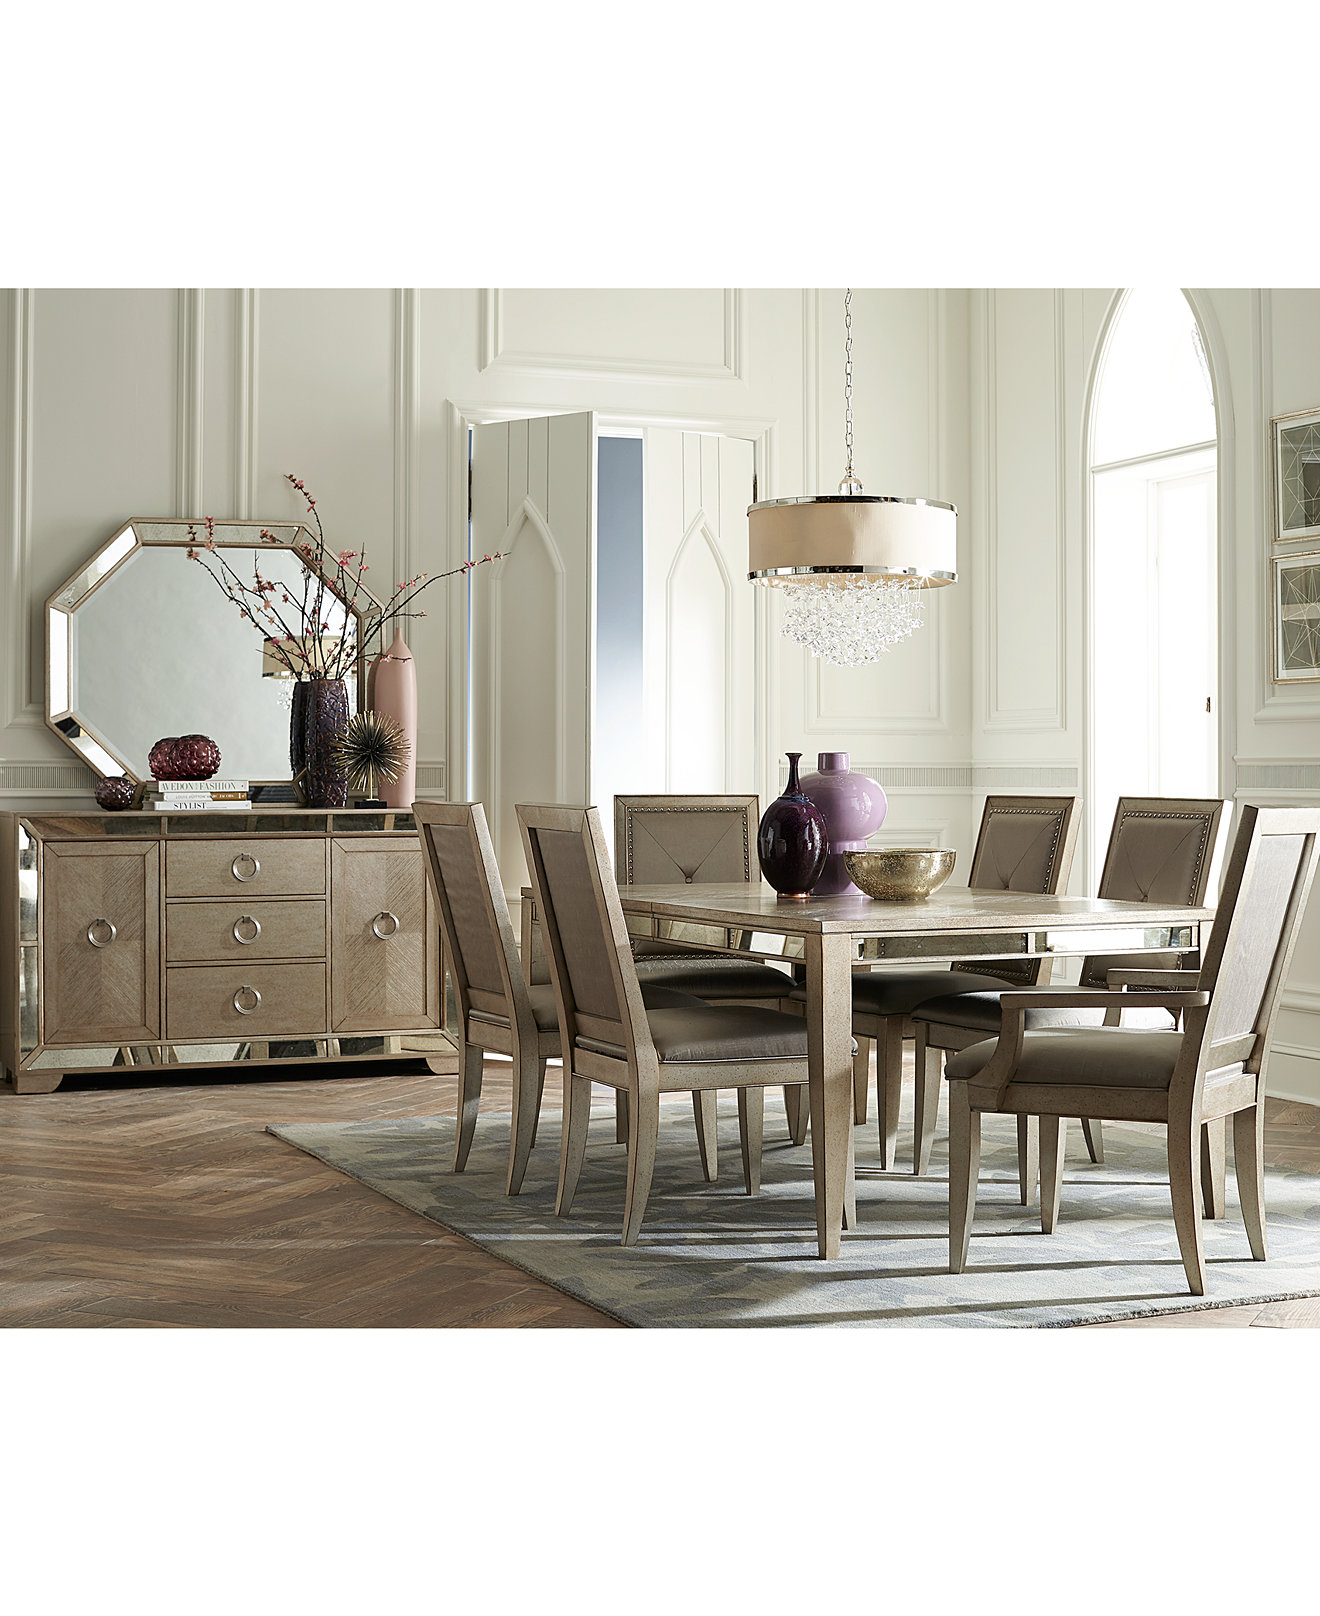 Macys Dining Room Sets Enchanting 67 Best Macys Furniture Images On Pinterest Design Decoration